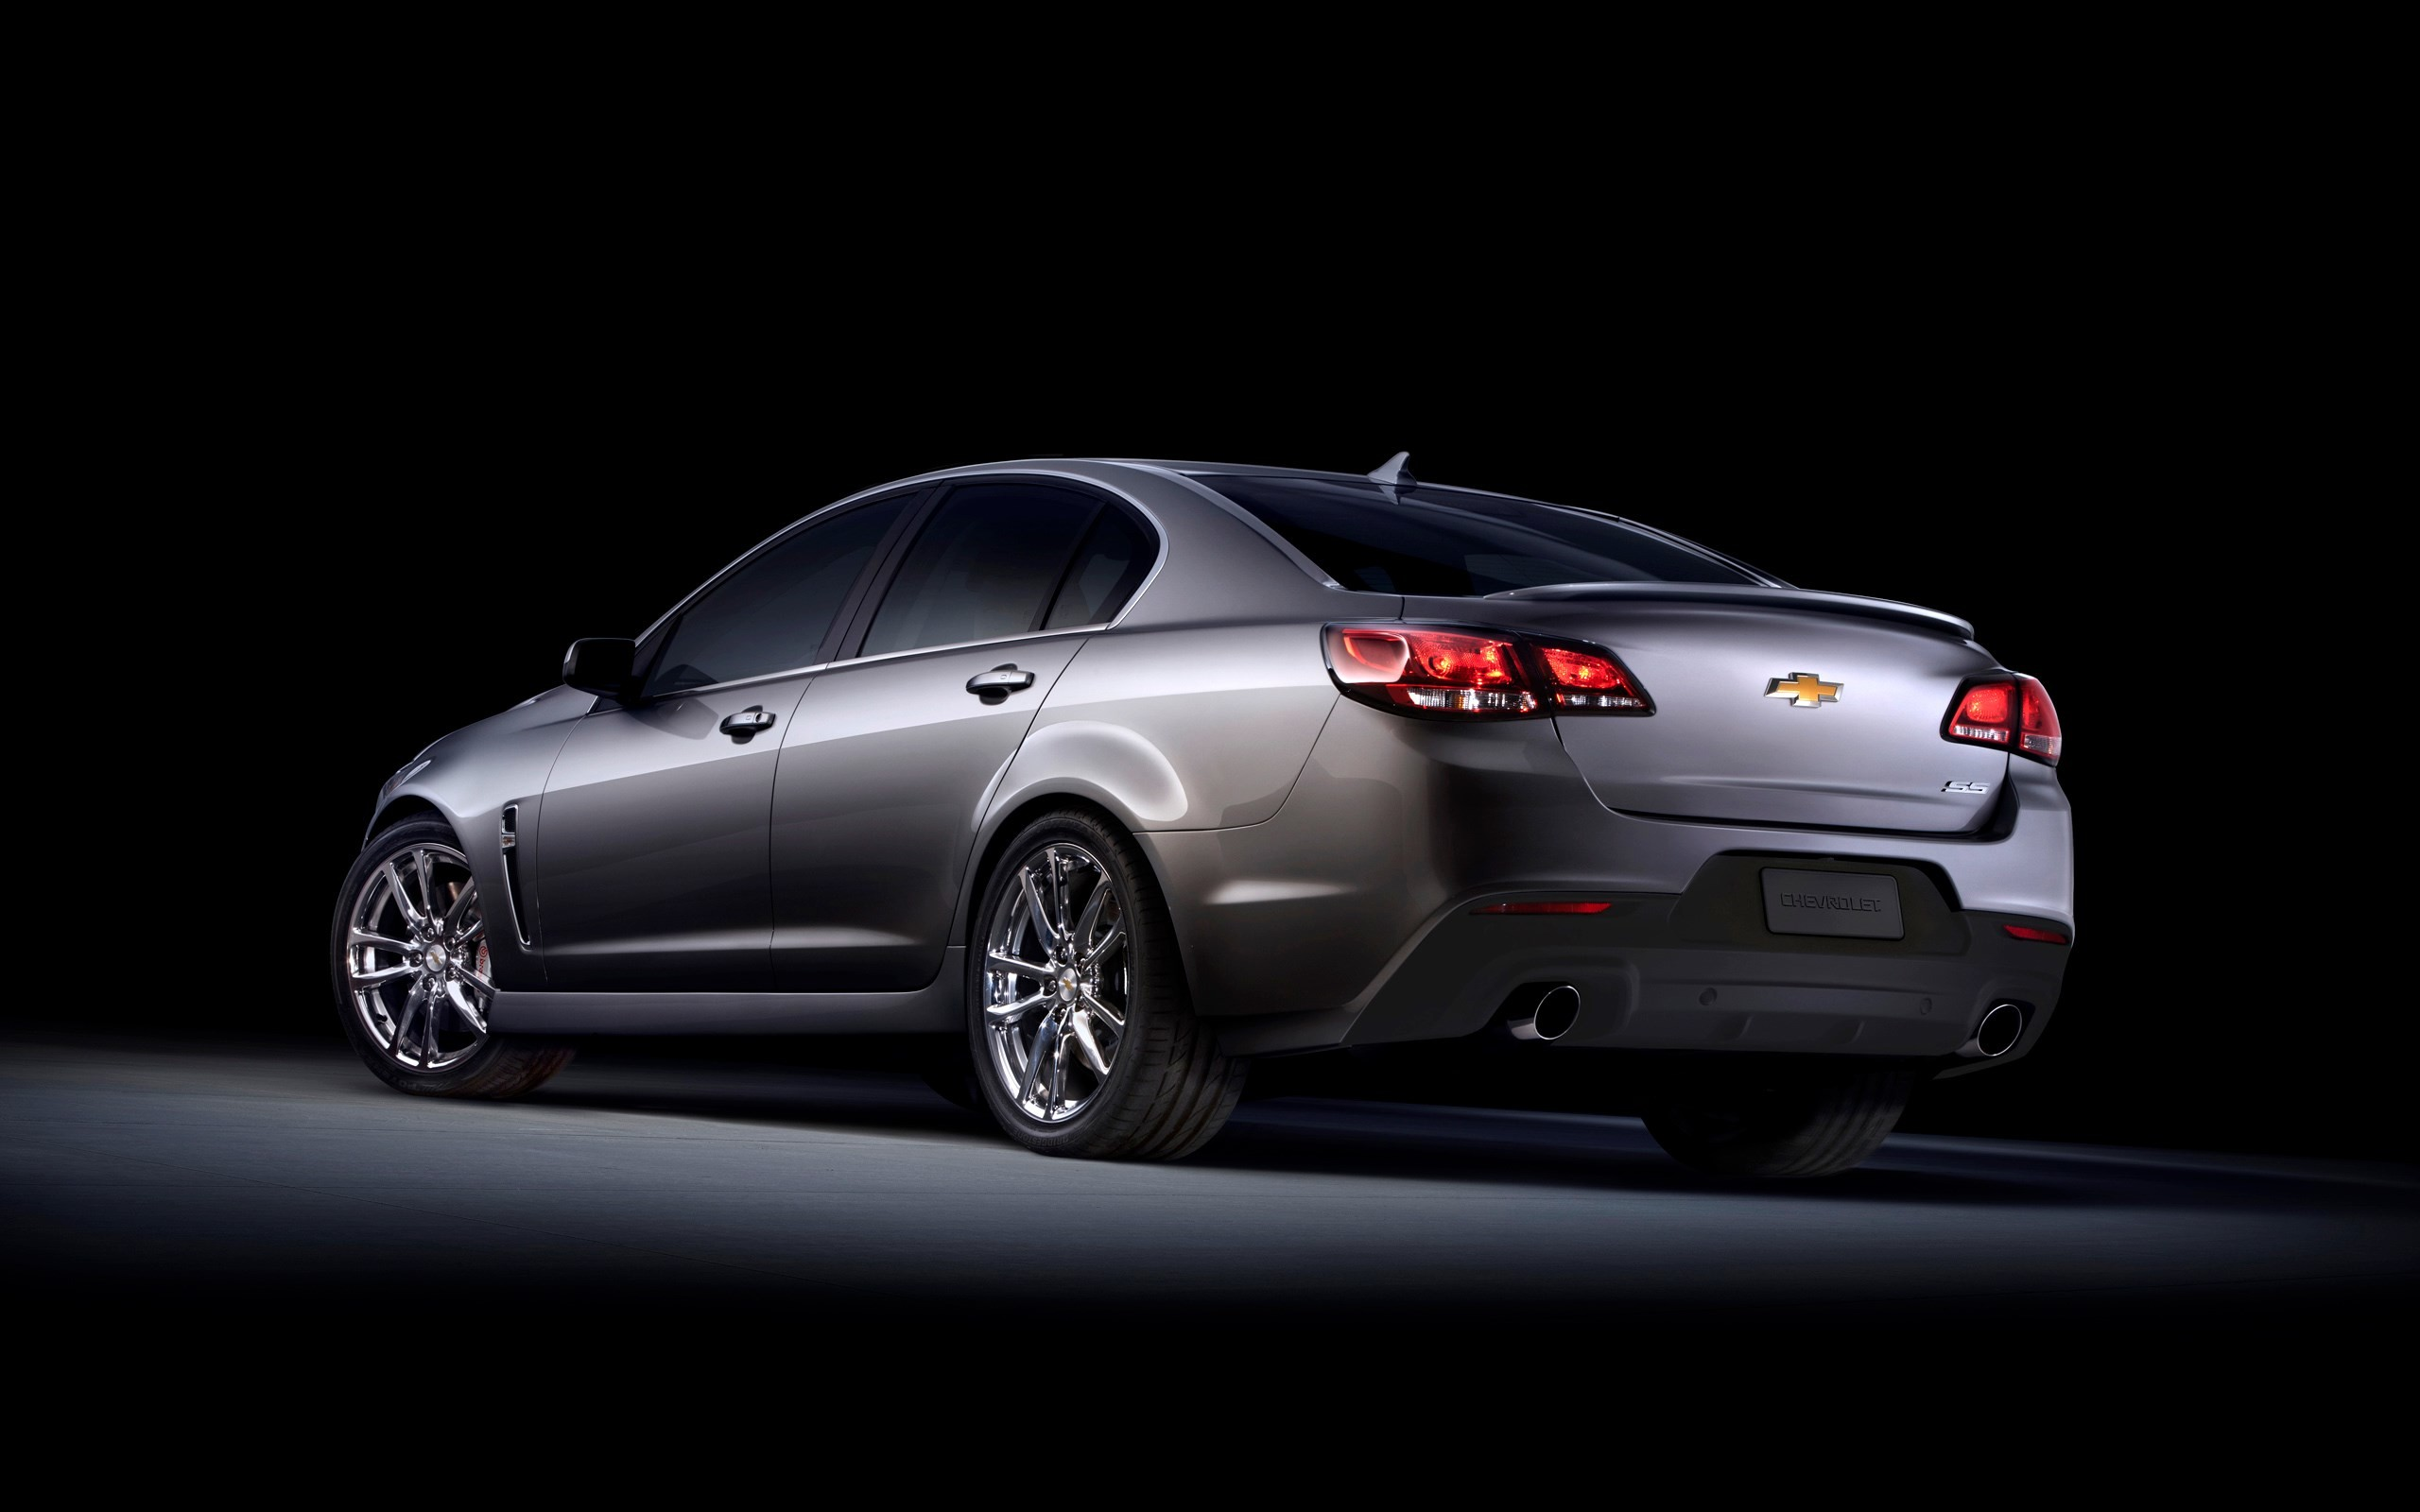 2560x1600 chevrolet ss - Full HD Background